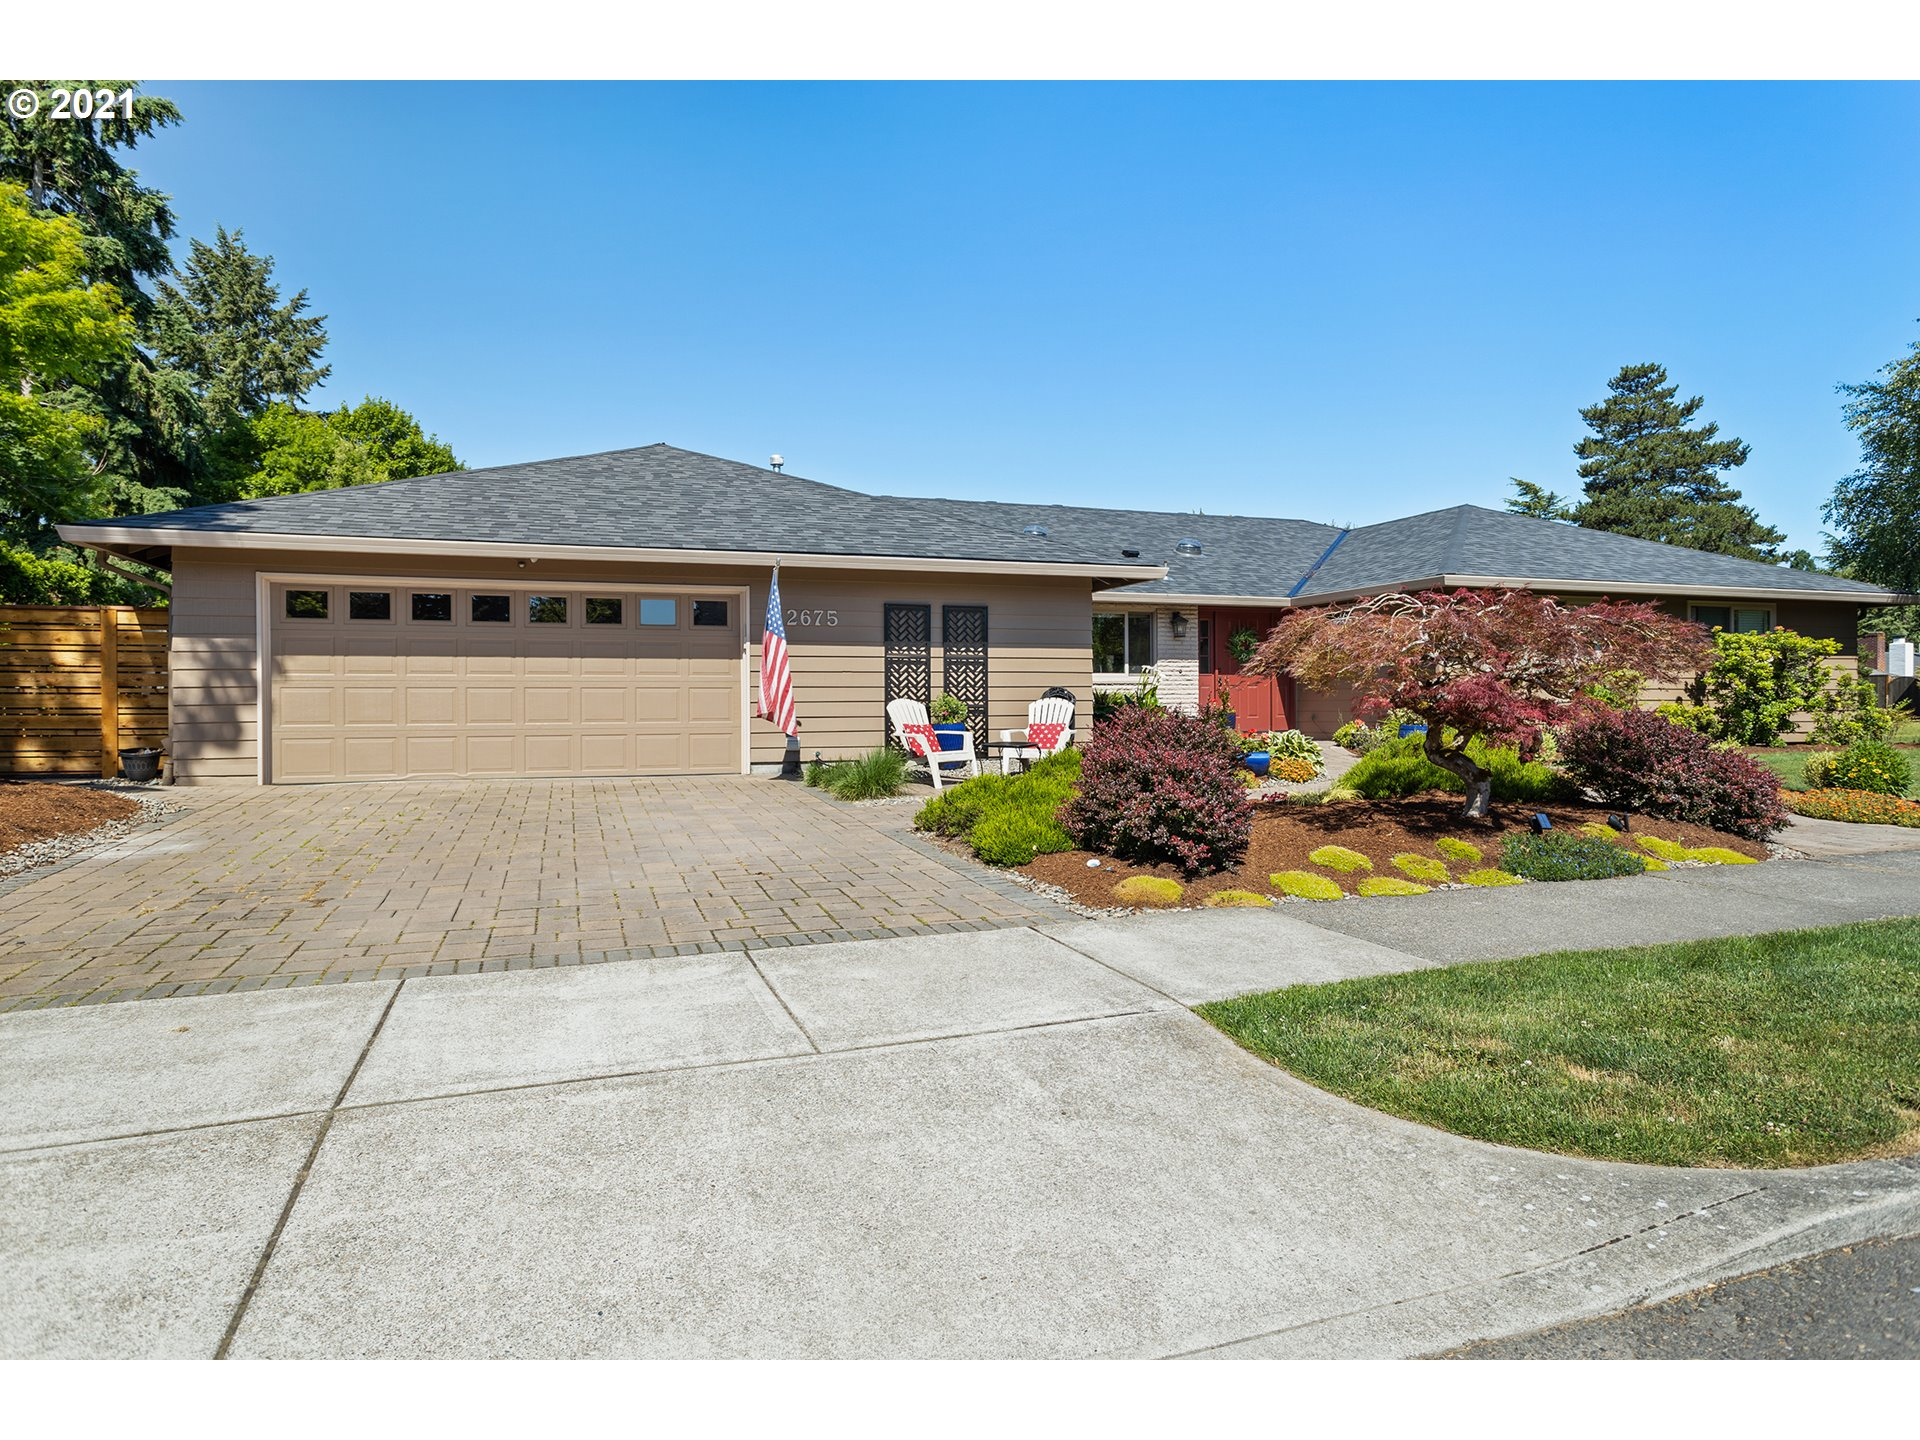 Desirable Oak Hills one level beauty!  2446 sq ft w/4 bedrooms + 2 full baths on one side of floor plan & 5th on other side w/full bath. Open floor plan for living room, dining room, family room & kitchen.  2 new brick fireplaces & vaulted ceilings in living room.  Slider off family room to covered patio. New fenced yard w/artificial turf, hot tub & patio areas, next to greenbelt. New swim pool & clubhouse and play & recreational areas as well as walking trails & athletic fields in Oak Hills.